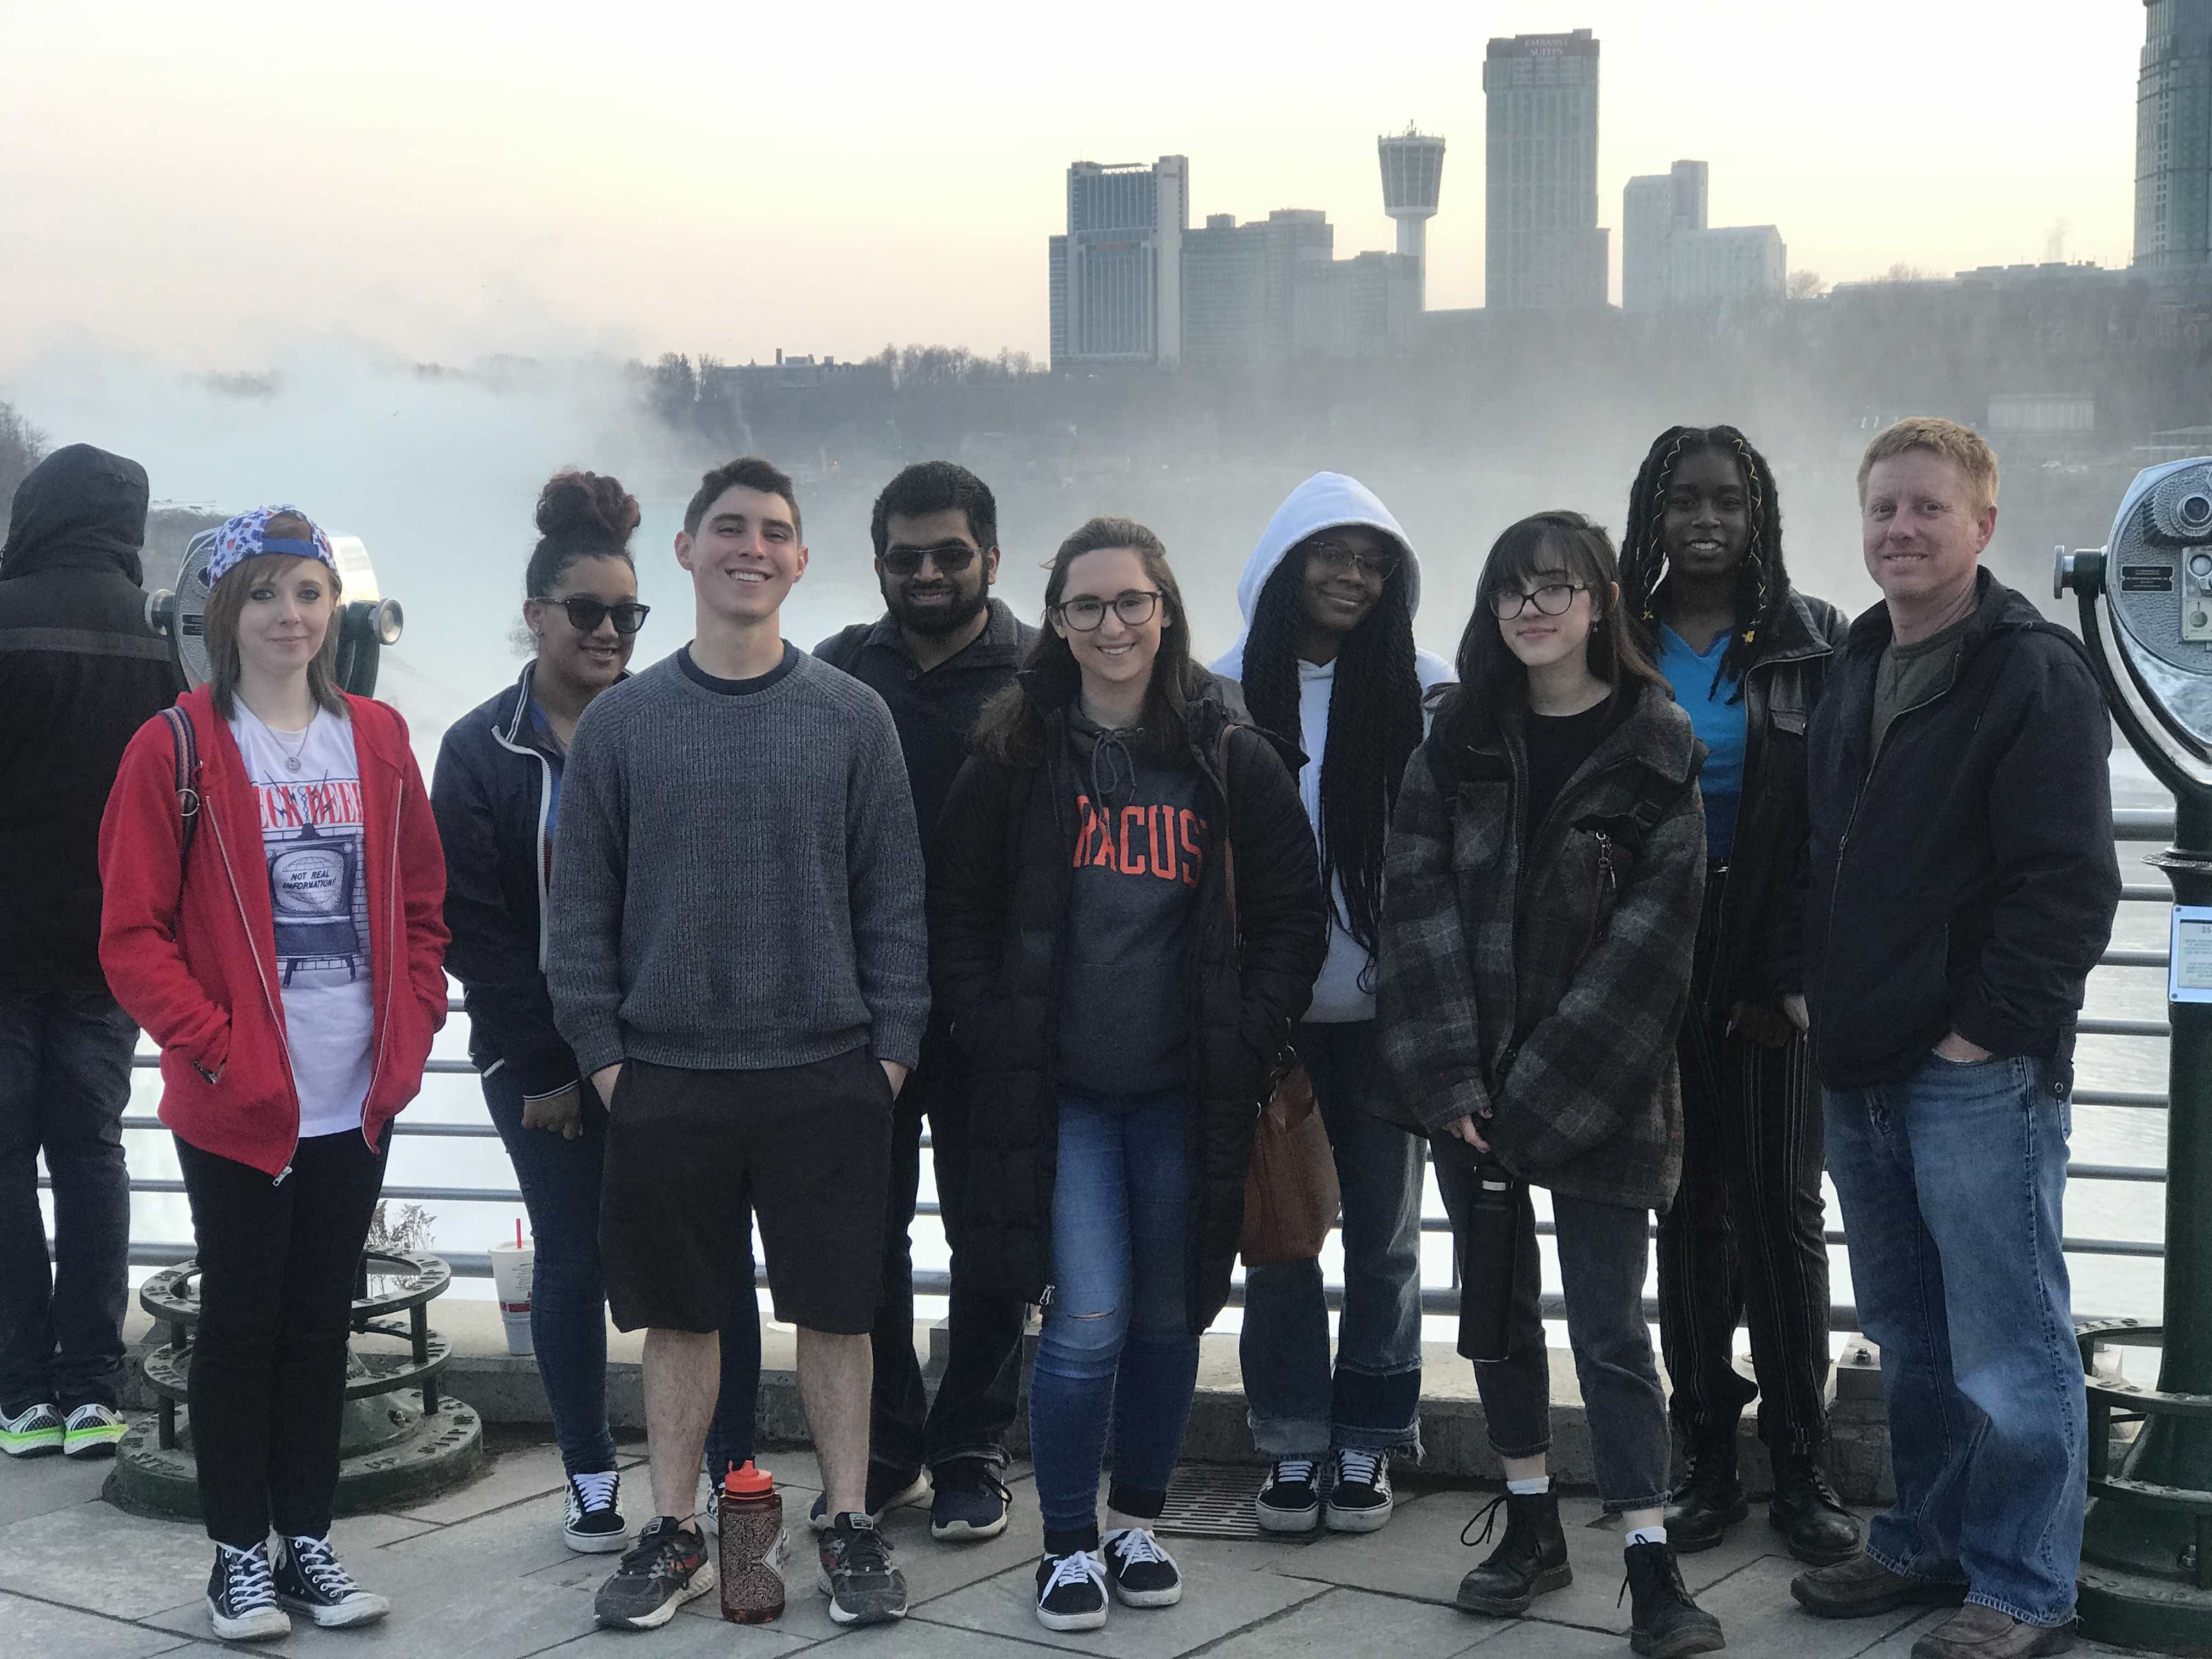 About Borderlines: Team West in Niagara Falls, New York